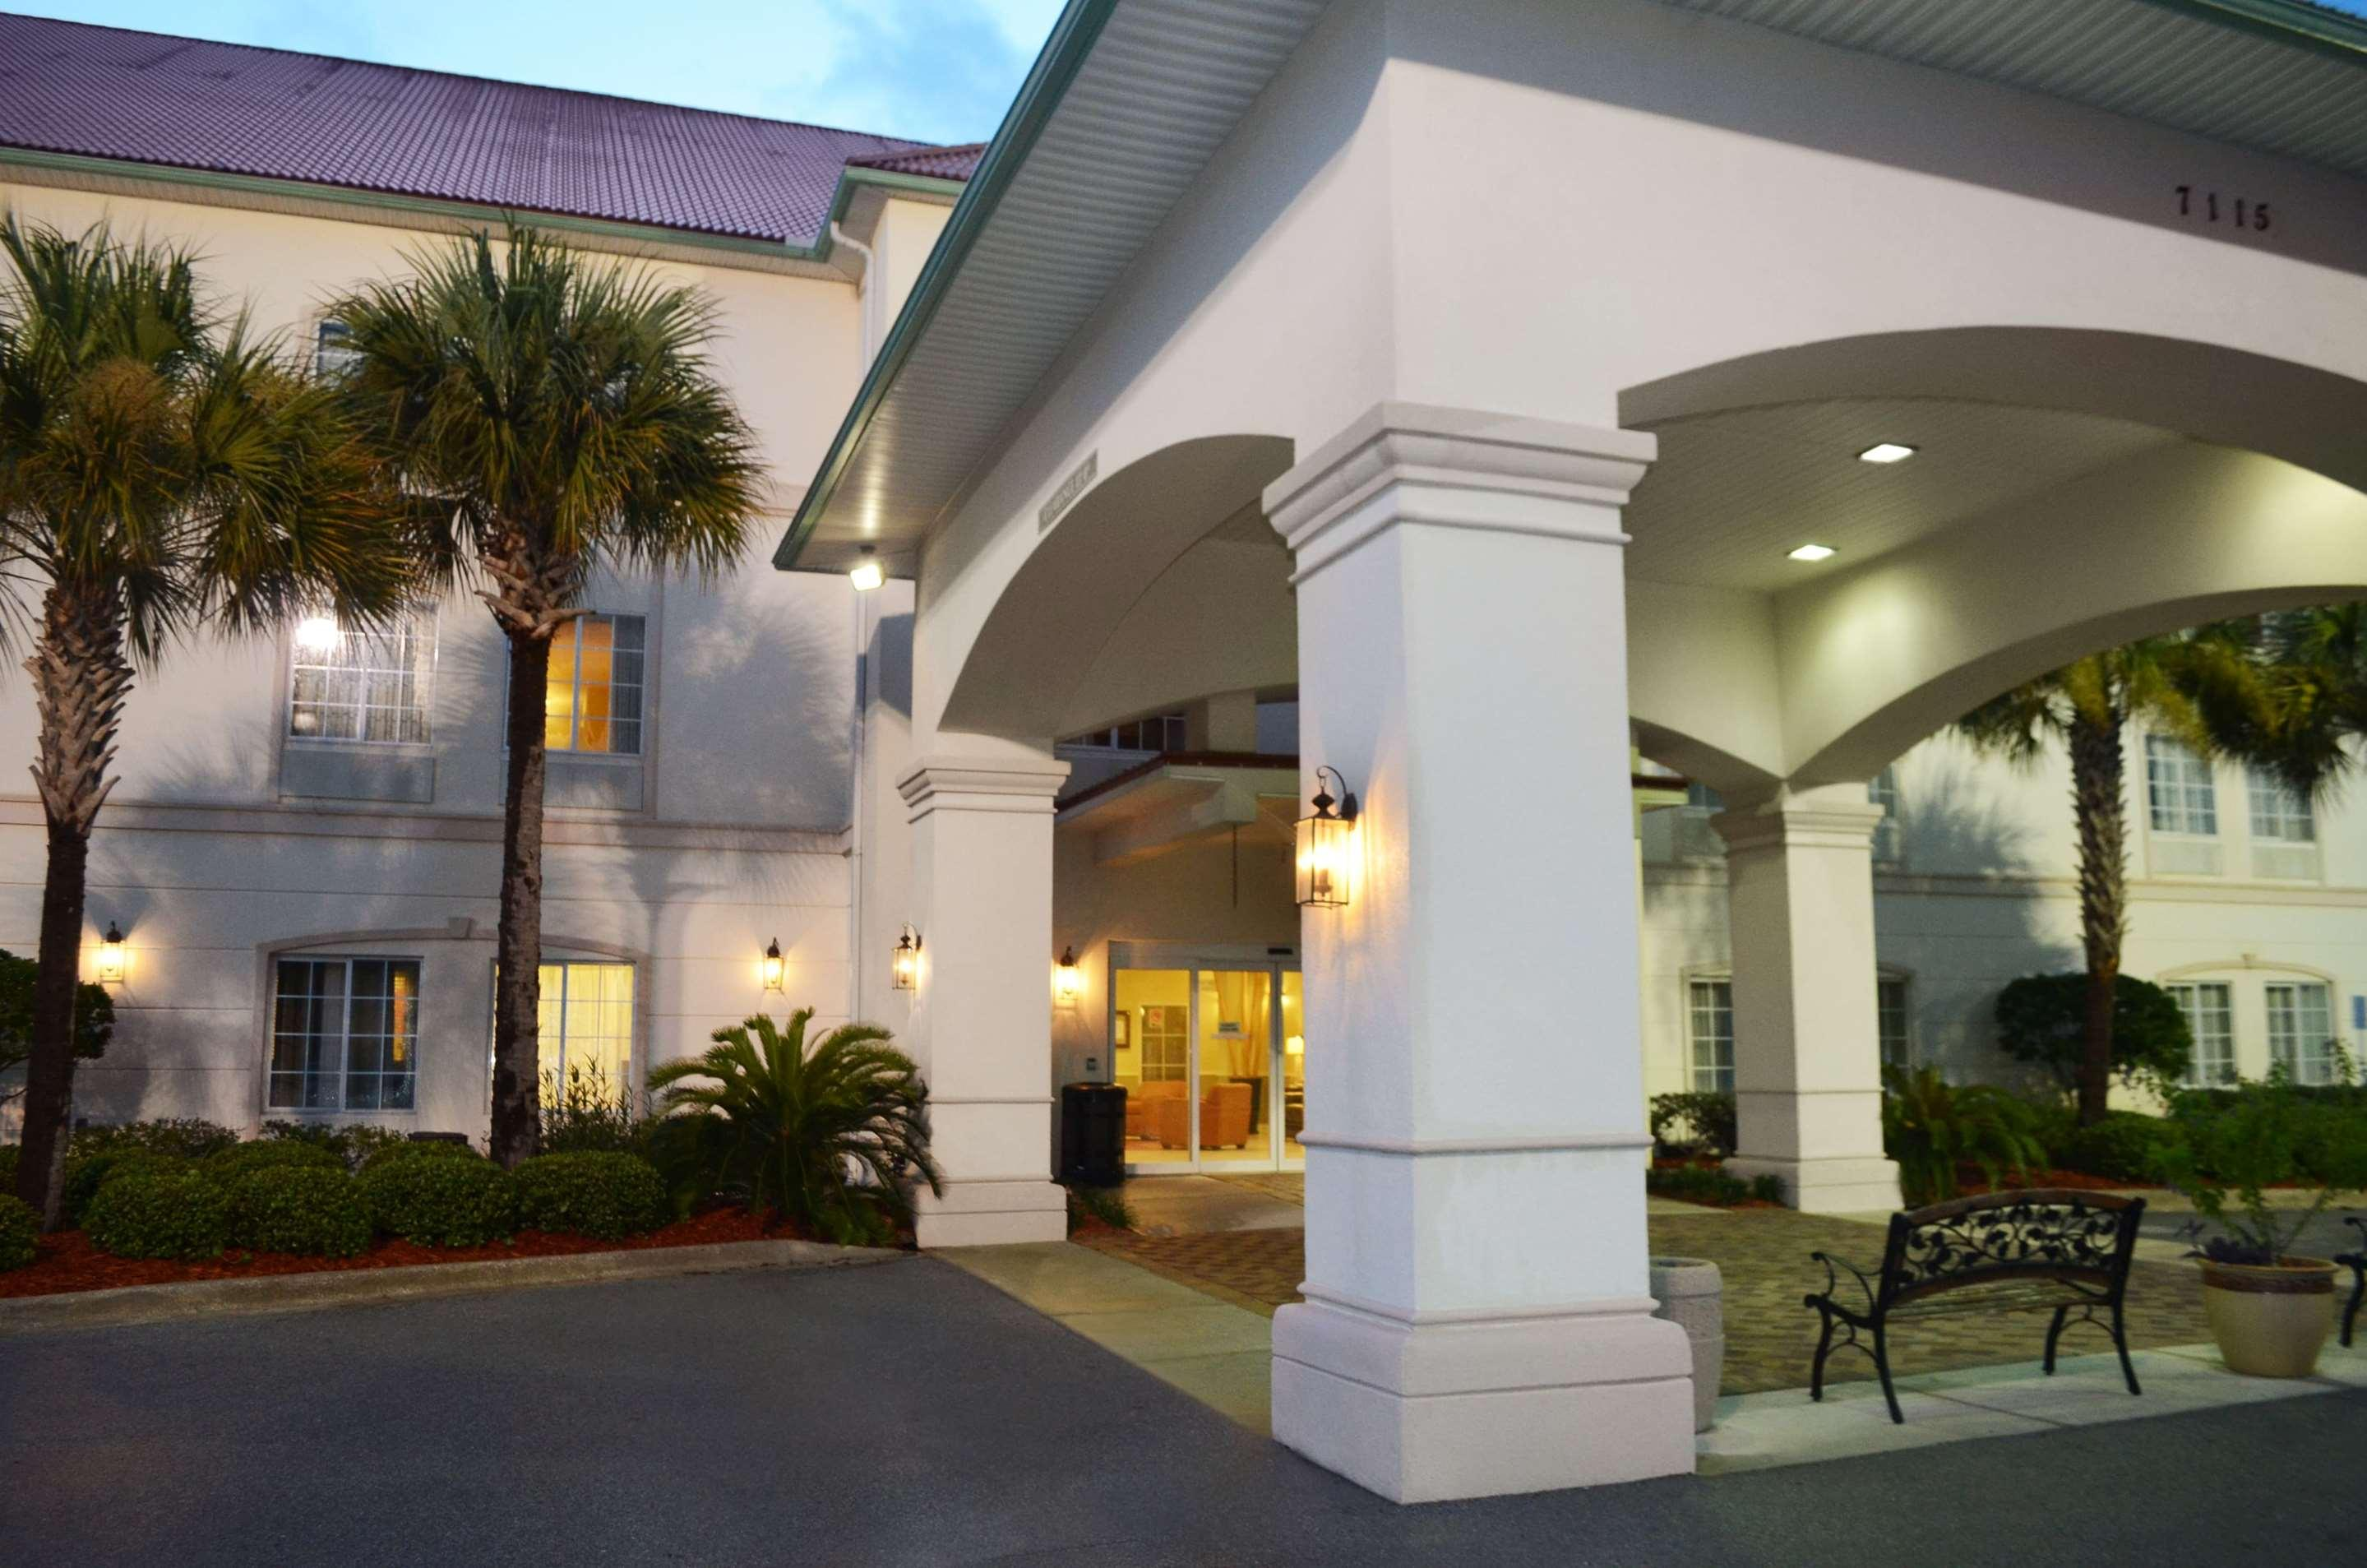 La Quinta Inn & Suites by Wyndham Panama City Beach